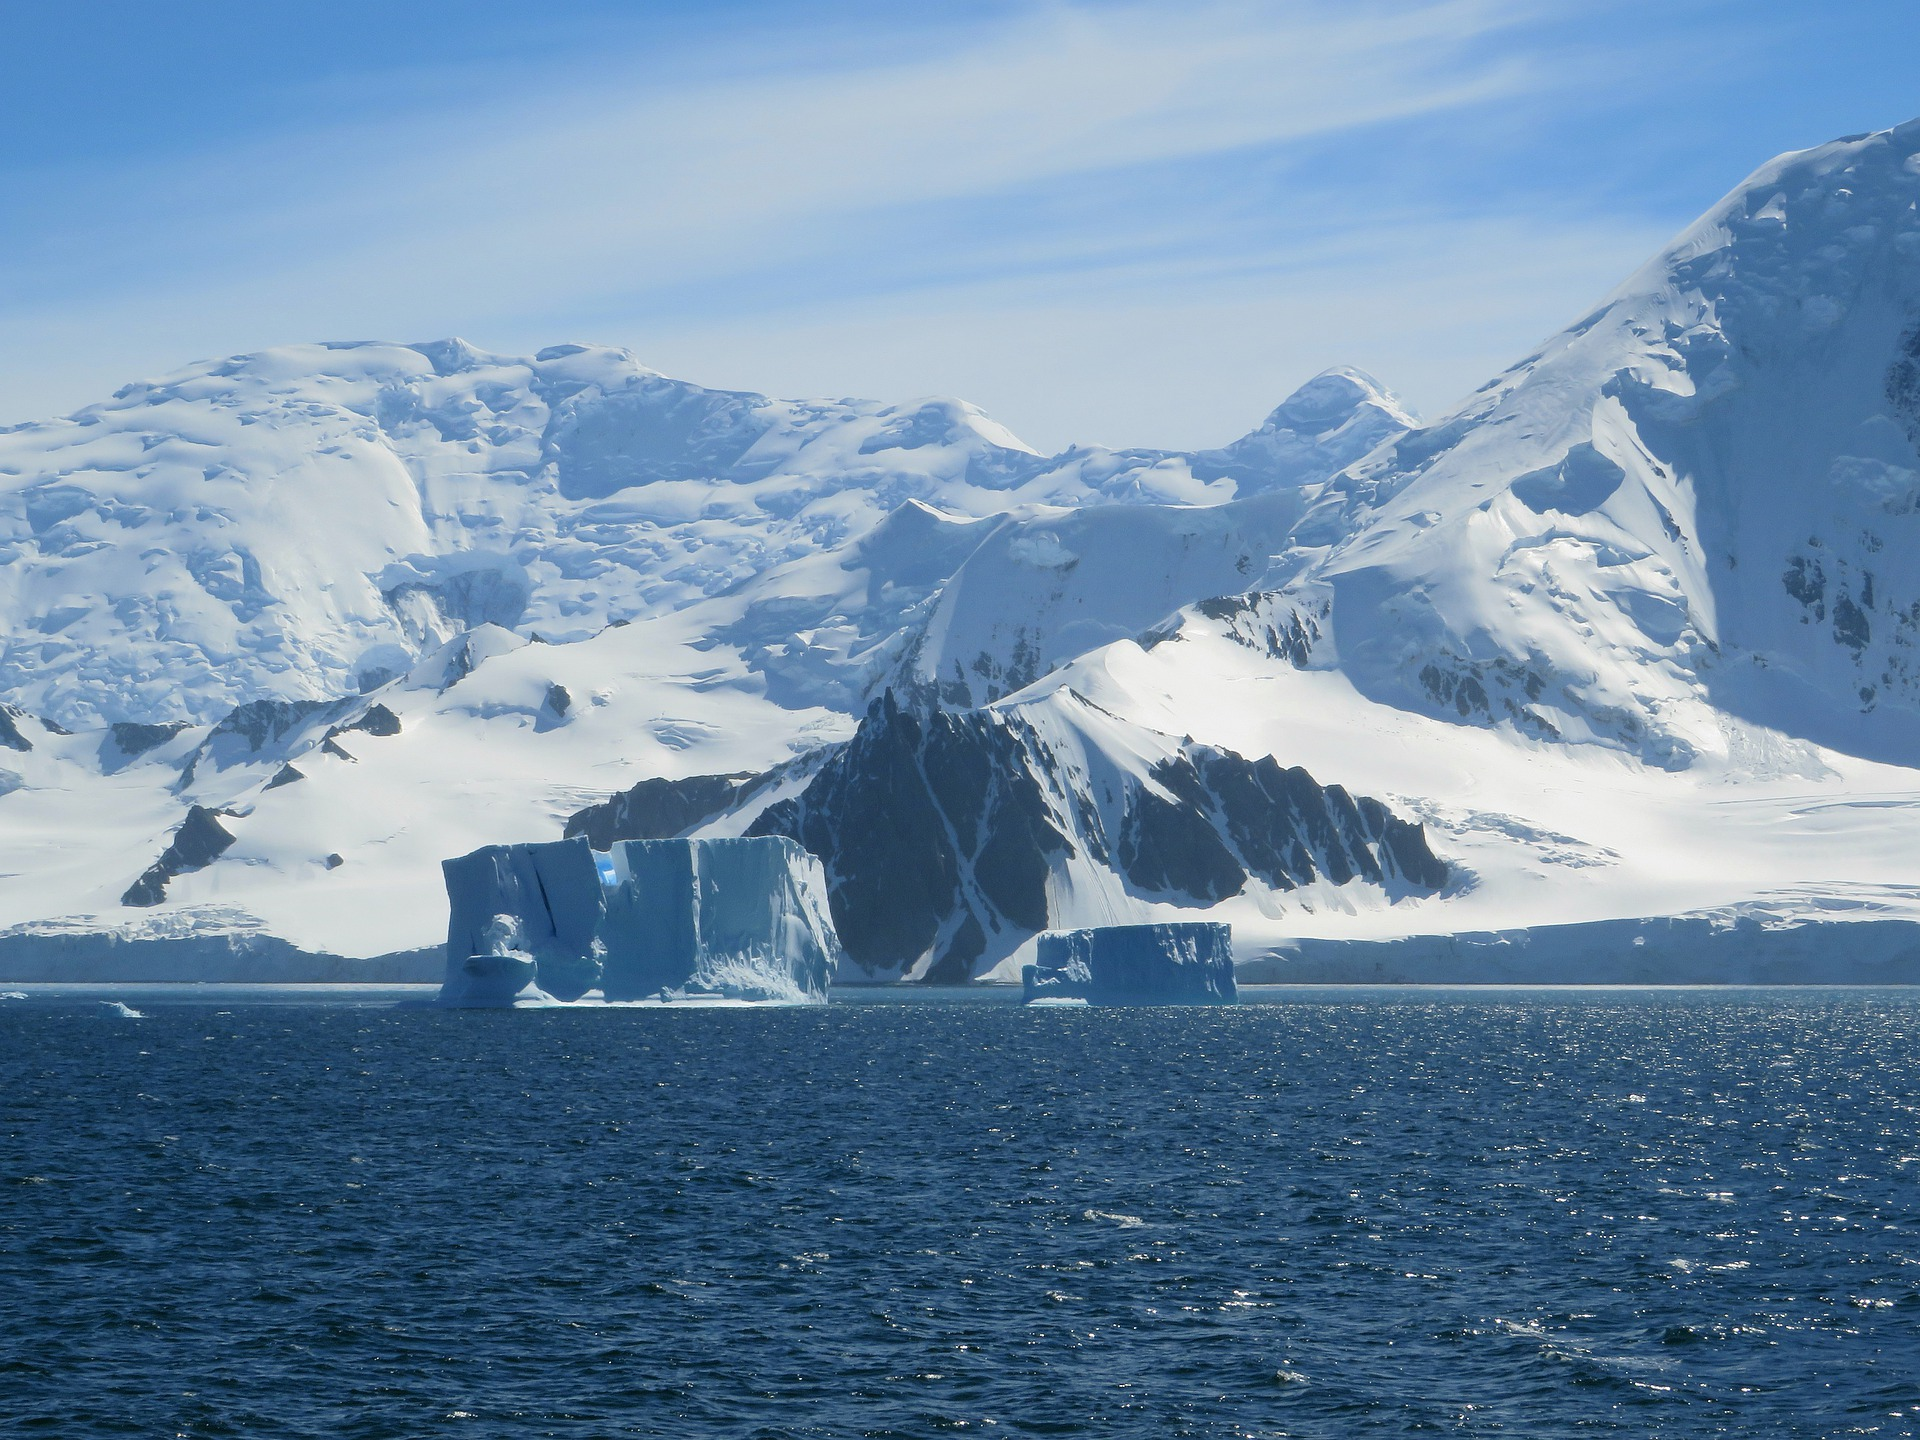 How will climate change affect the Southern Ocean ecosystems?